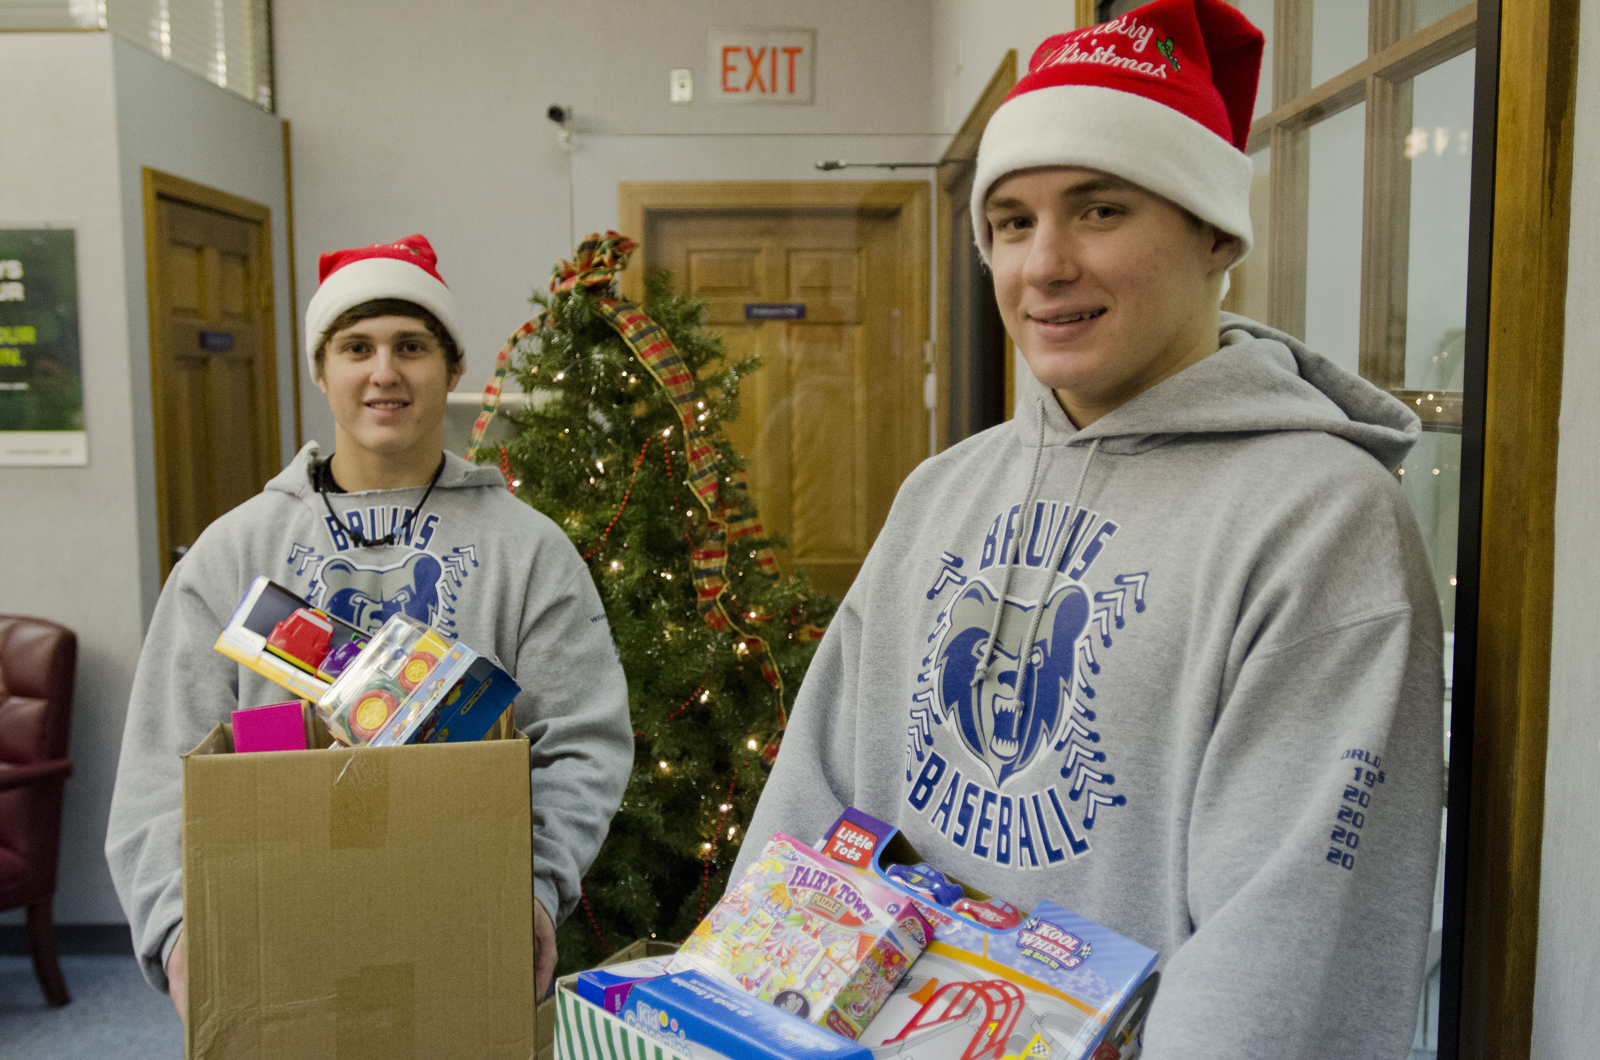 Members of the baseball team drop off toys donated to the Toys for Tots program at Independent Bank on Dec. 6, 2012.